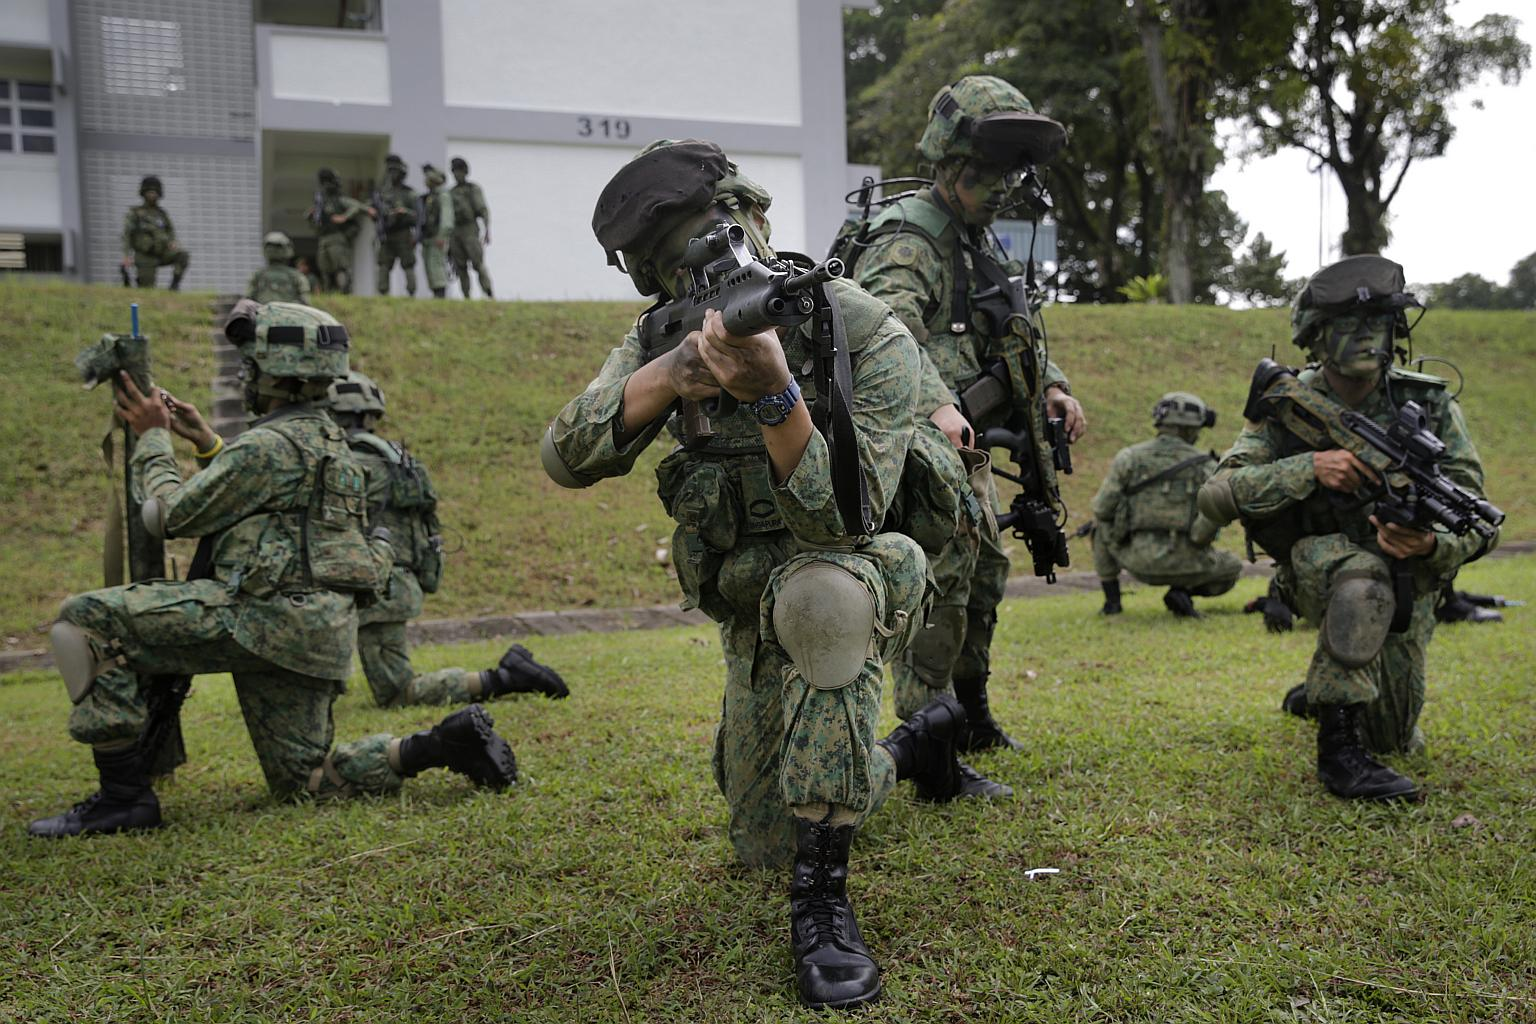 Women and other stakeholders like employers play a part in ensuring Singapore's defence through their support of national service (NS), said Speaker of Parliament Halimah Yacob, as she shared her fears when her older son suffered an injury during NS.